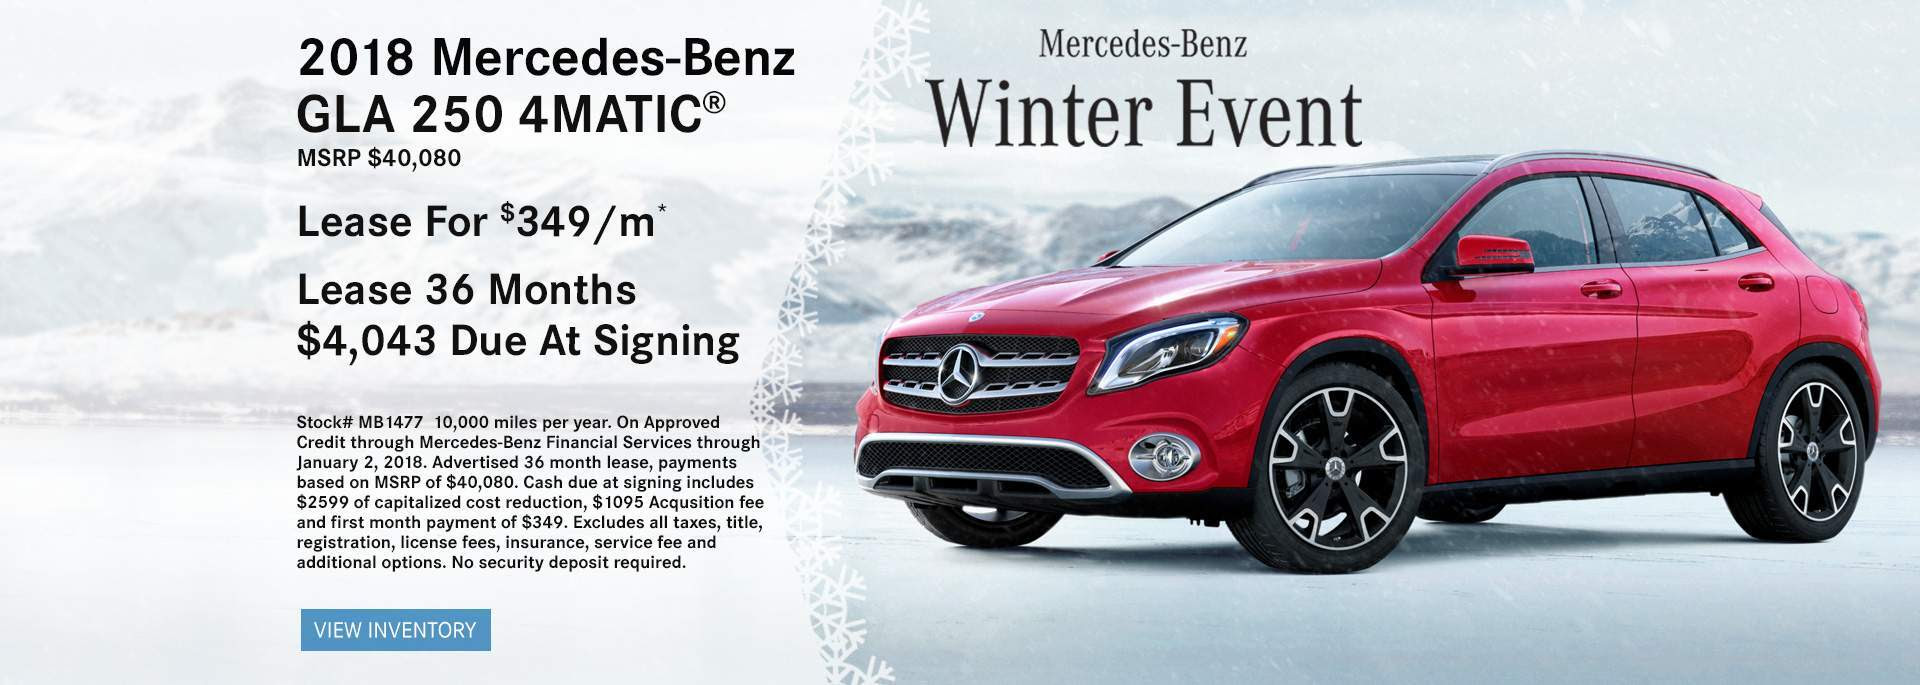 Mercedes-Benz Dealership Rochester MN | Used Cars Mercedes ...